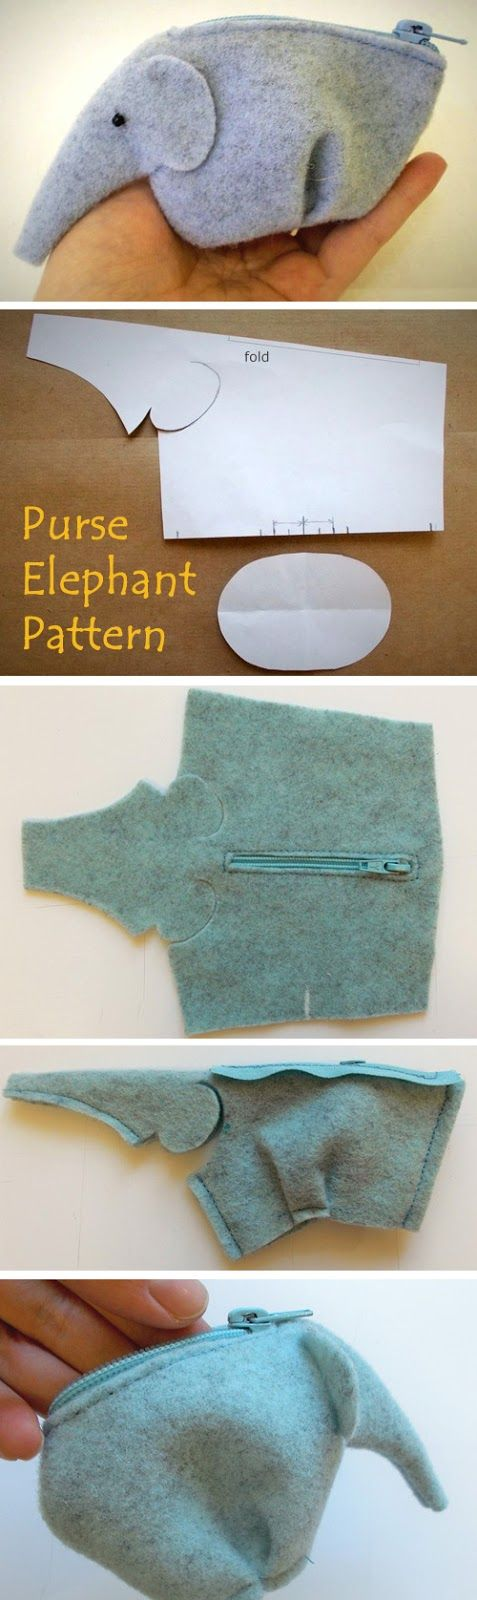 How to Sew Purse Elephant. Photo Sewing Tutorial.   http://www.handmadiya.com/2016/03/purse-elephant-tutorial.html